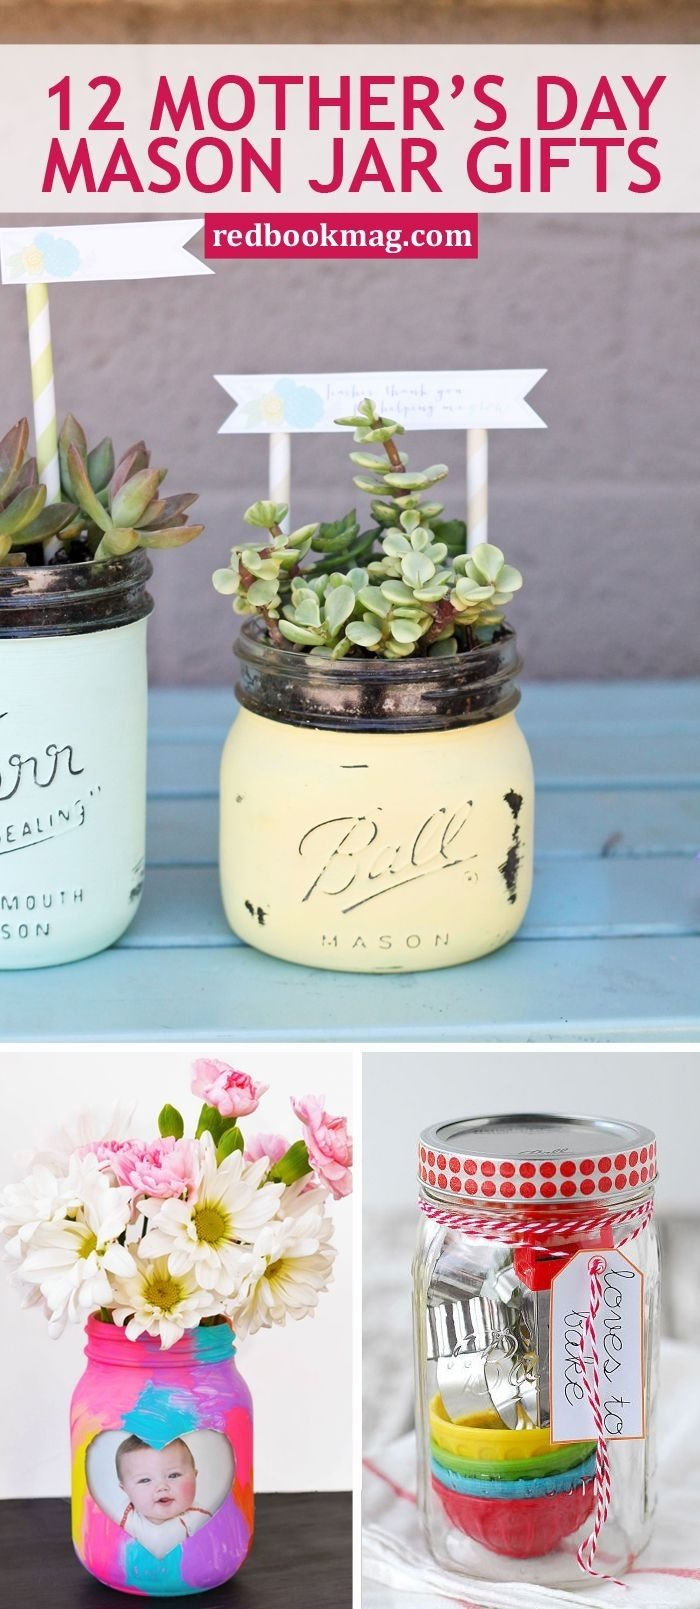 10 Trendy Homemade Mothers Day Gift Ideas 33 cute mothers day ideas that all come in mason jars homemade 1